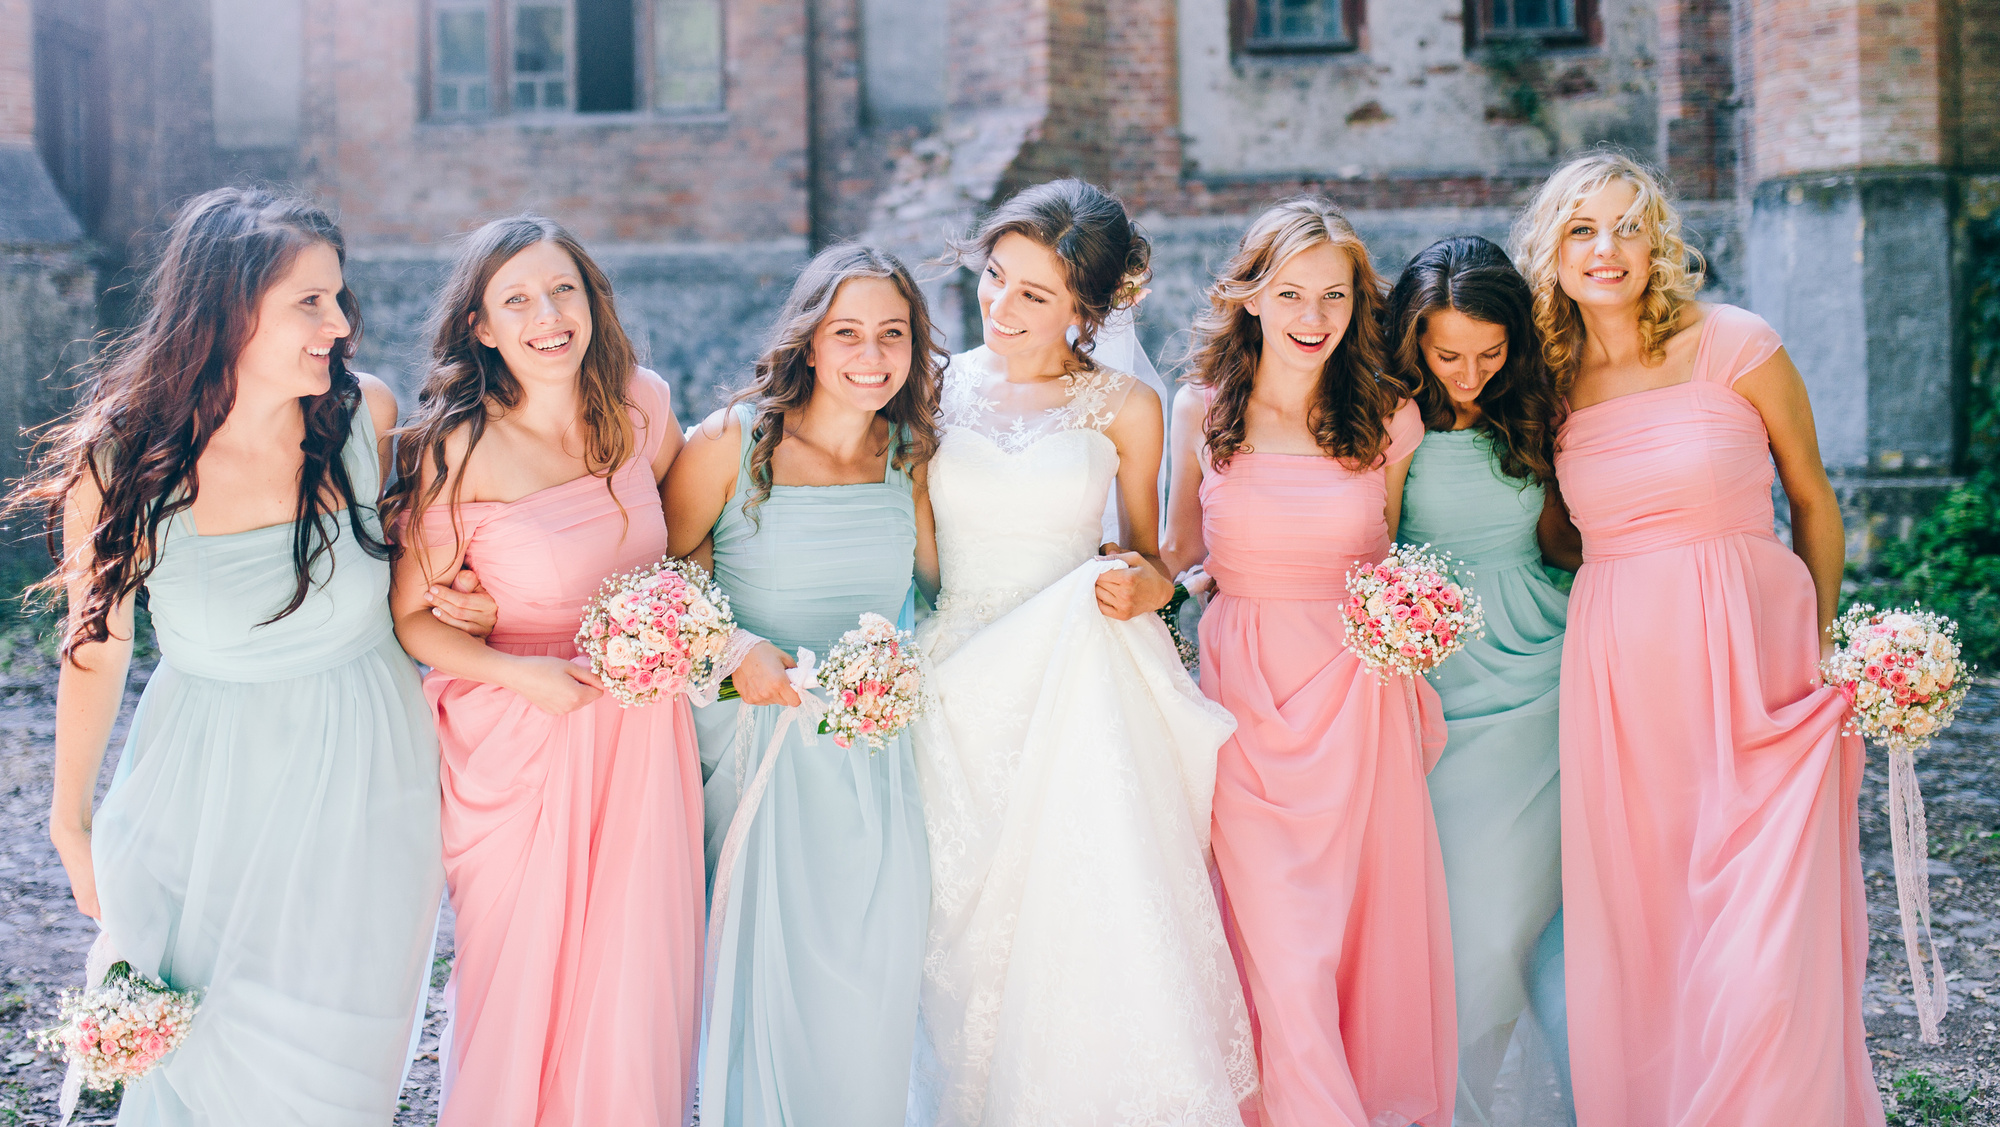 Average Wedding Dress Price | How Much Should The Average Wedding Dress Cost For Bridesmaids